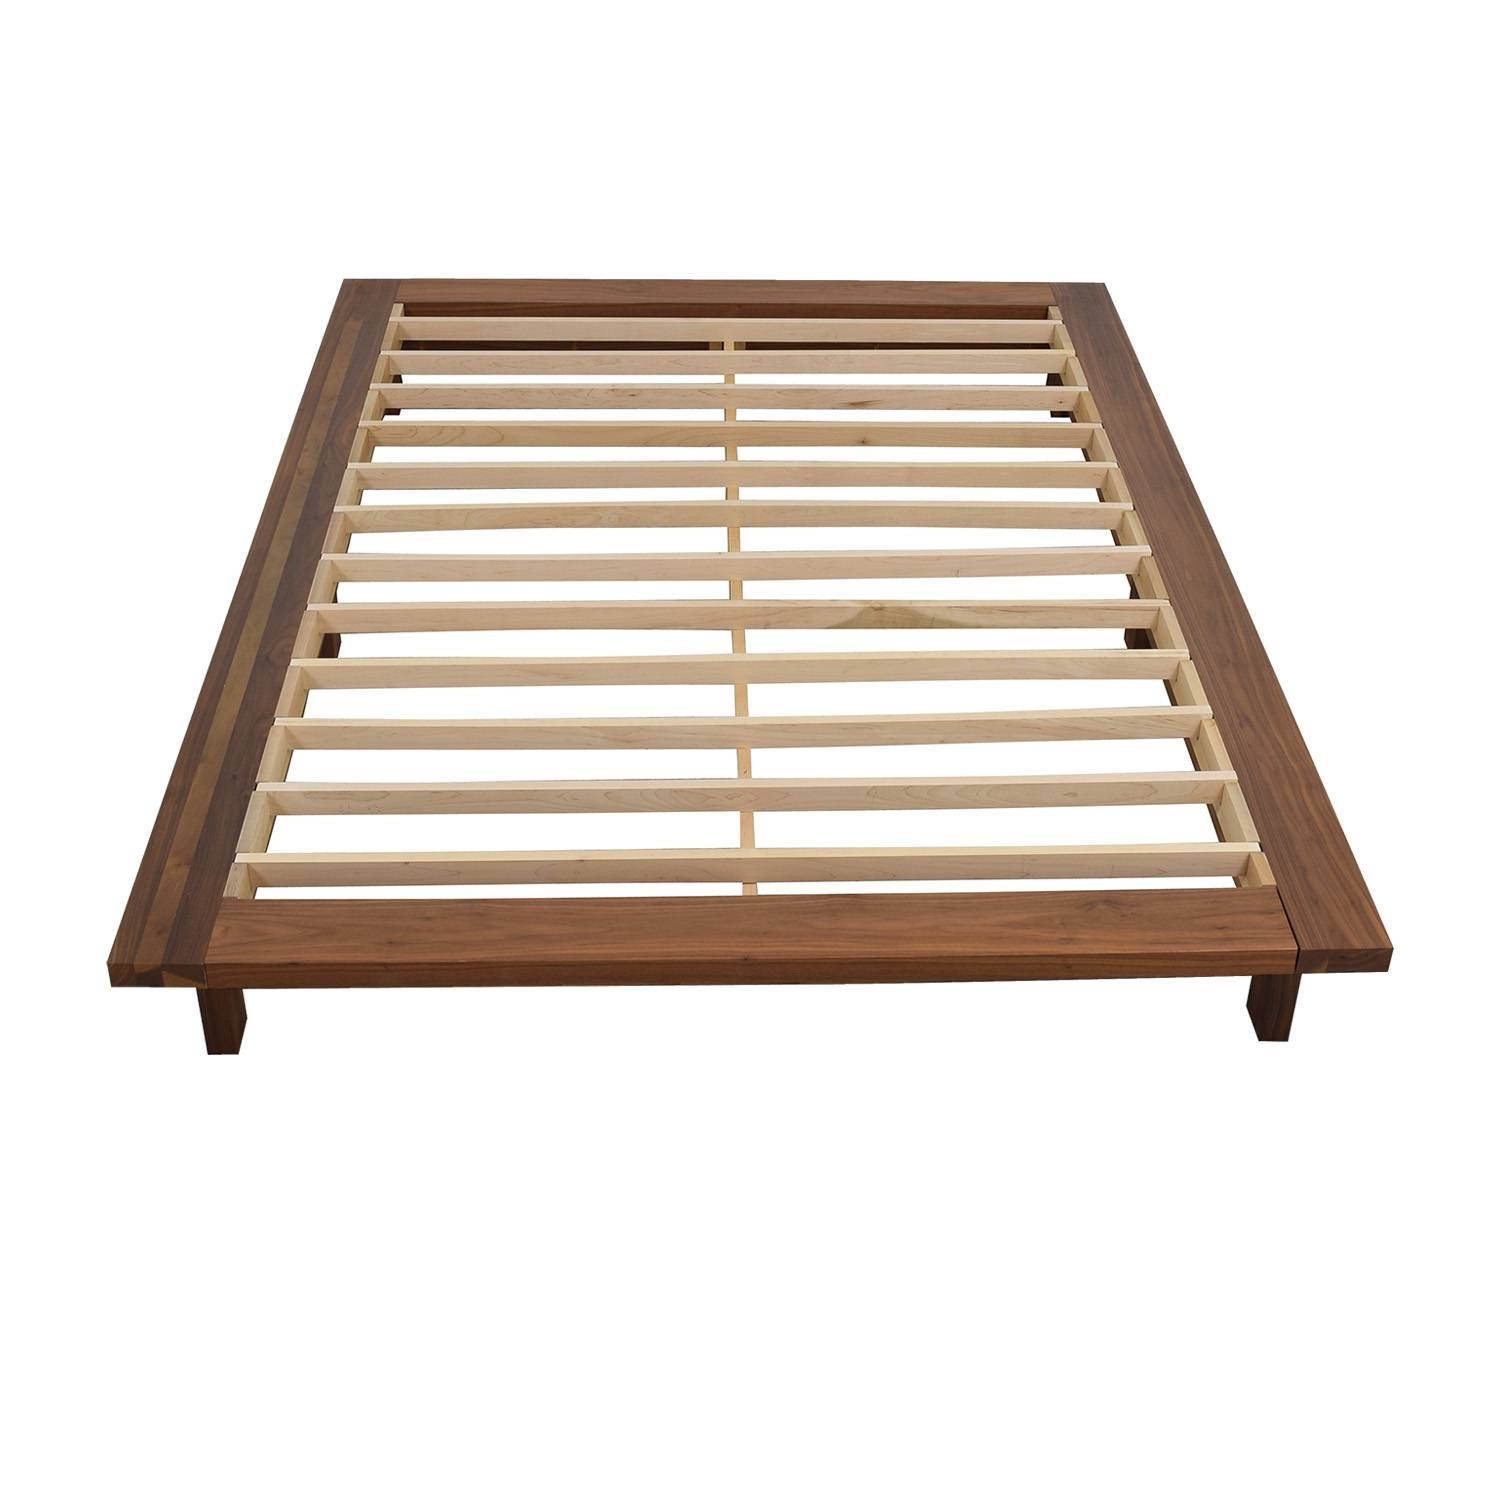 Bed Frames: Used Bed Frames For Sale For Most Recent Crate Barrel Coastal Wall  Art